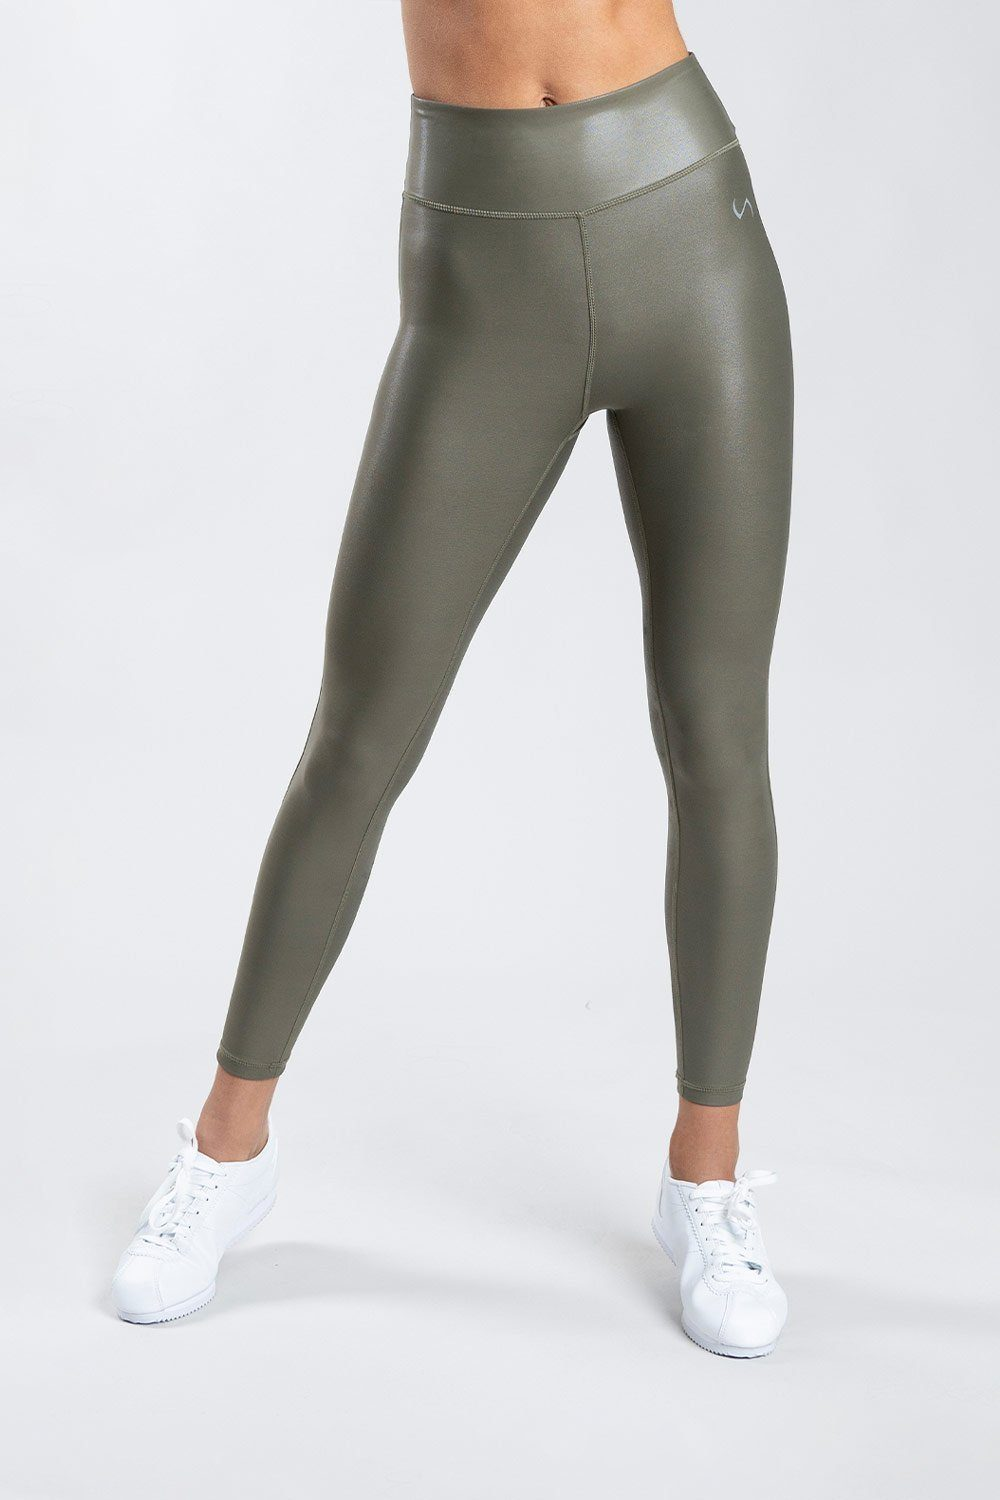 TLF Arctic Legging - LEGGINGS - TLF Apparel | Take Life Further